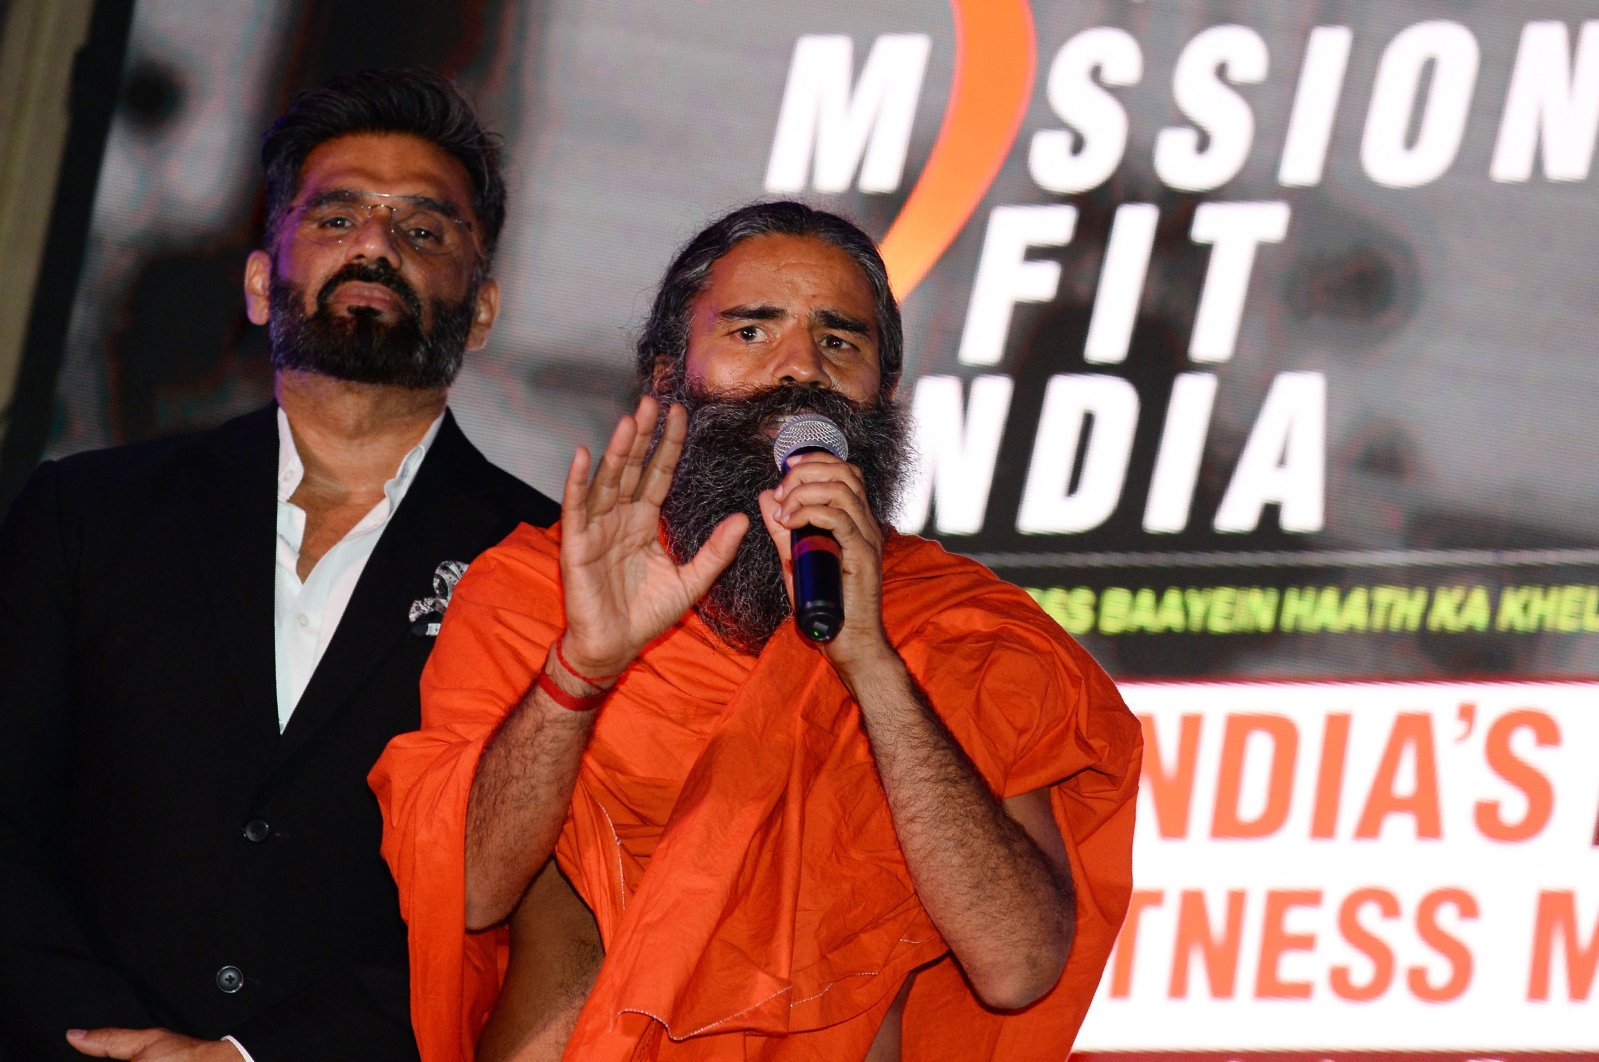 Indian Bollywood actor Suniel Shetty (L) and yoga guru Baba Ramdev speak to the media during a promotional event in New Delhi, India, June 4, 2018. (AFP Photo)